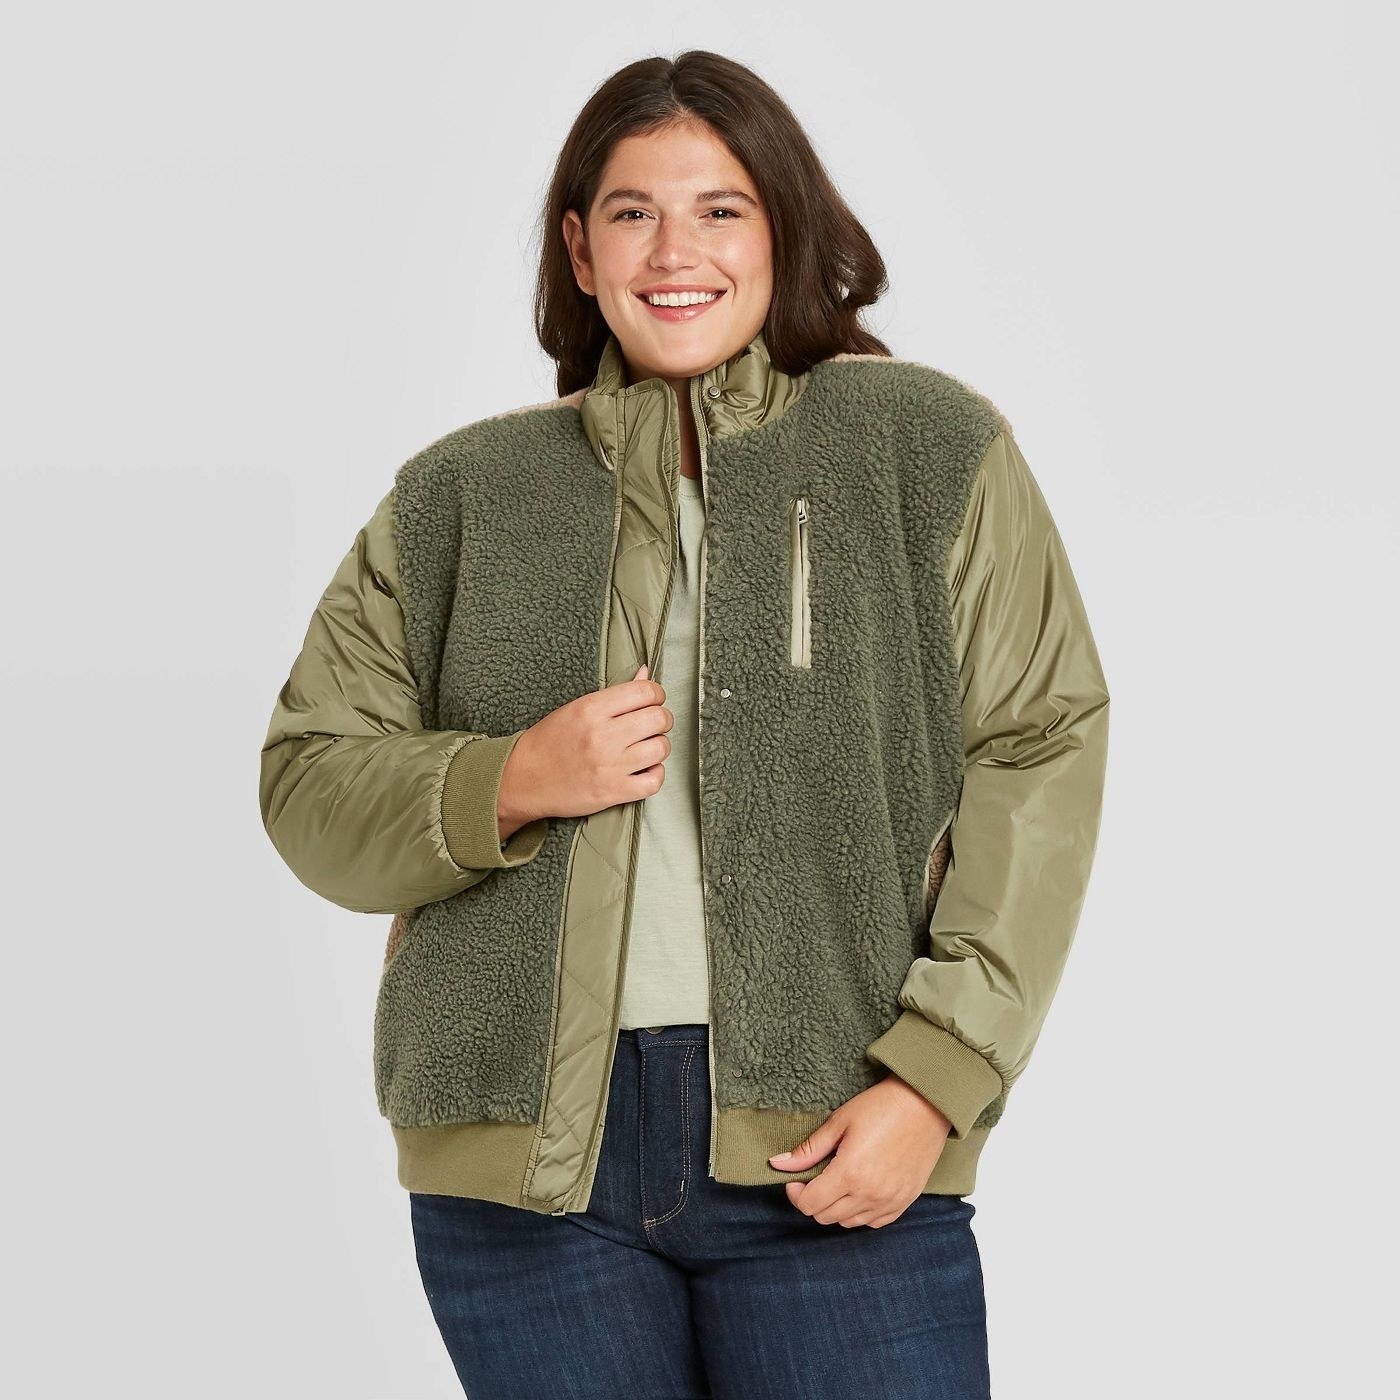 Model in green sherpa jacket